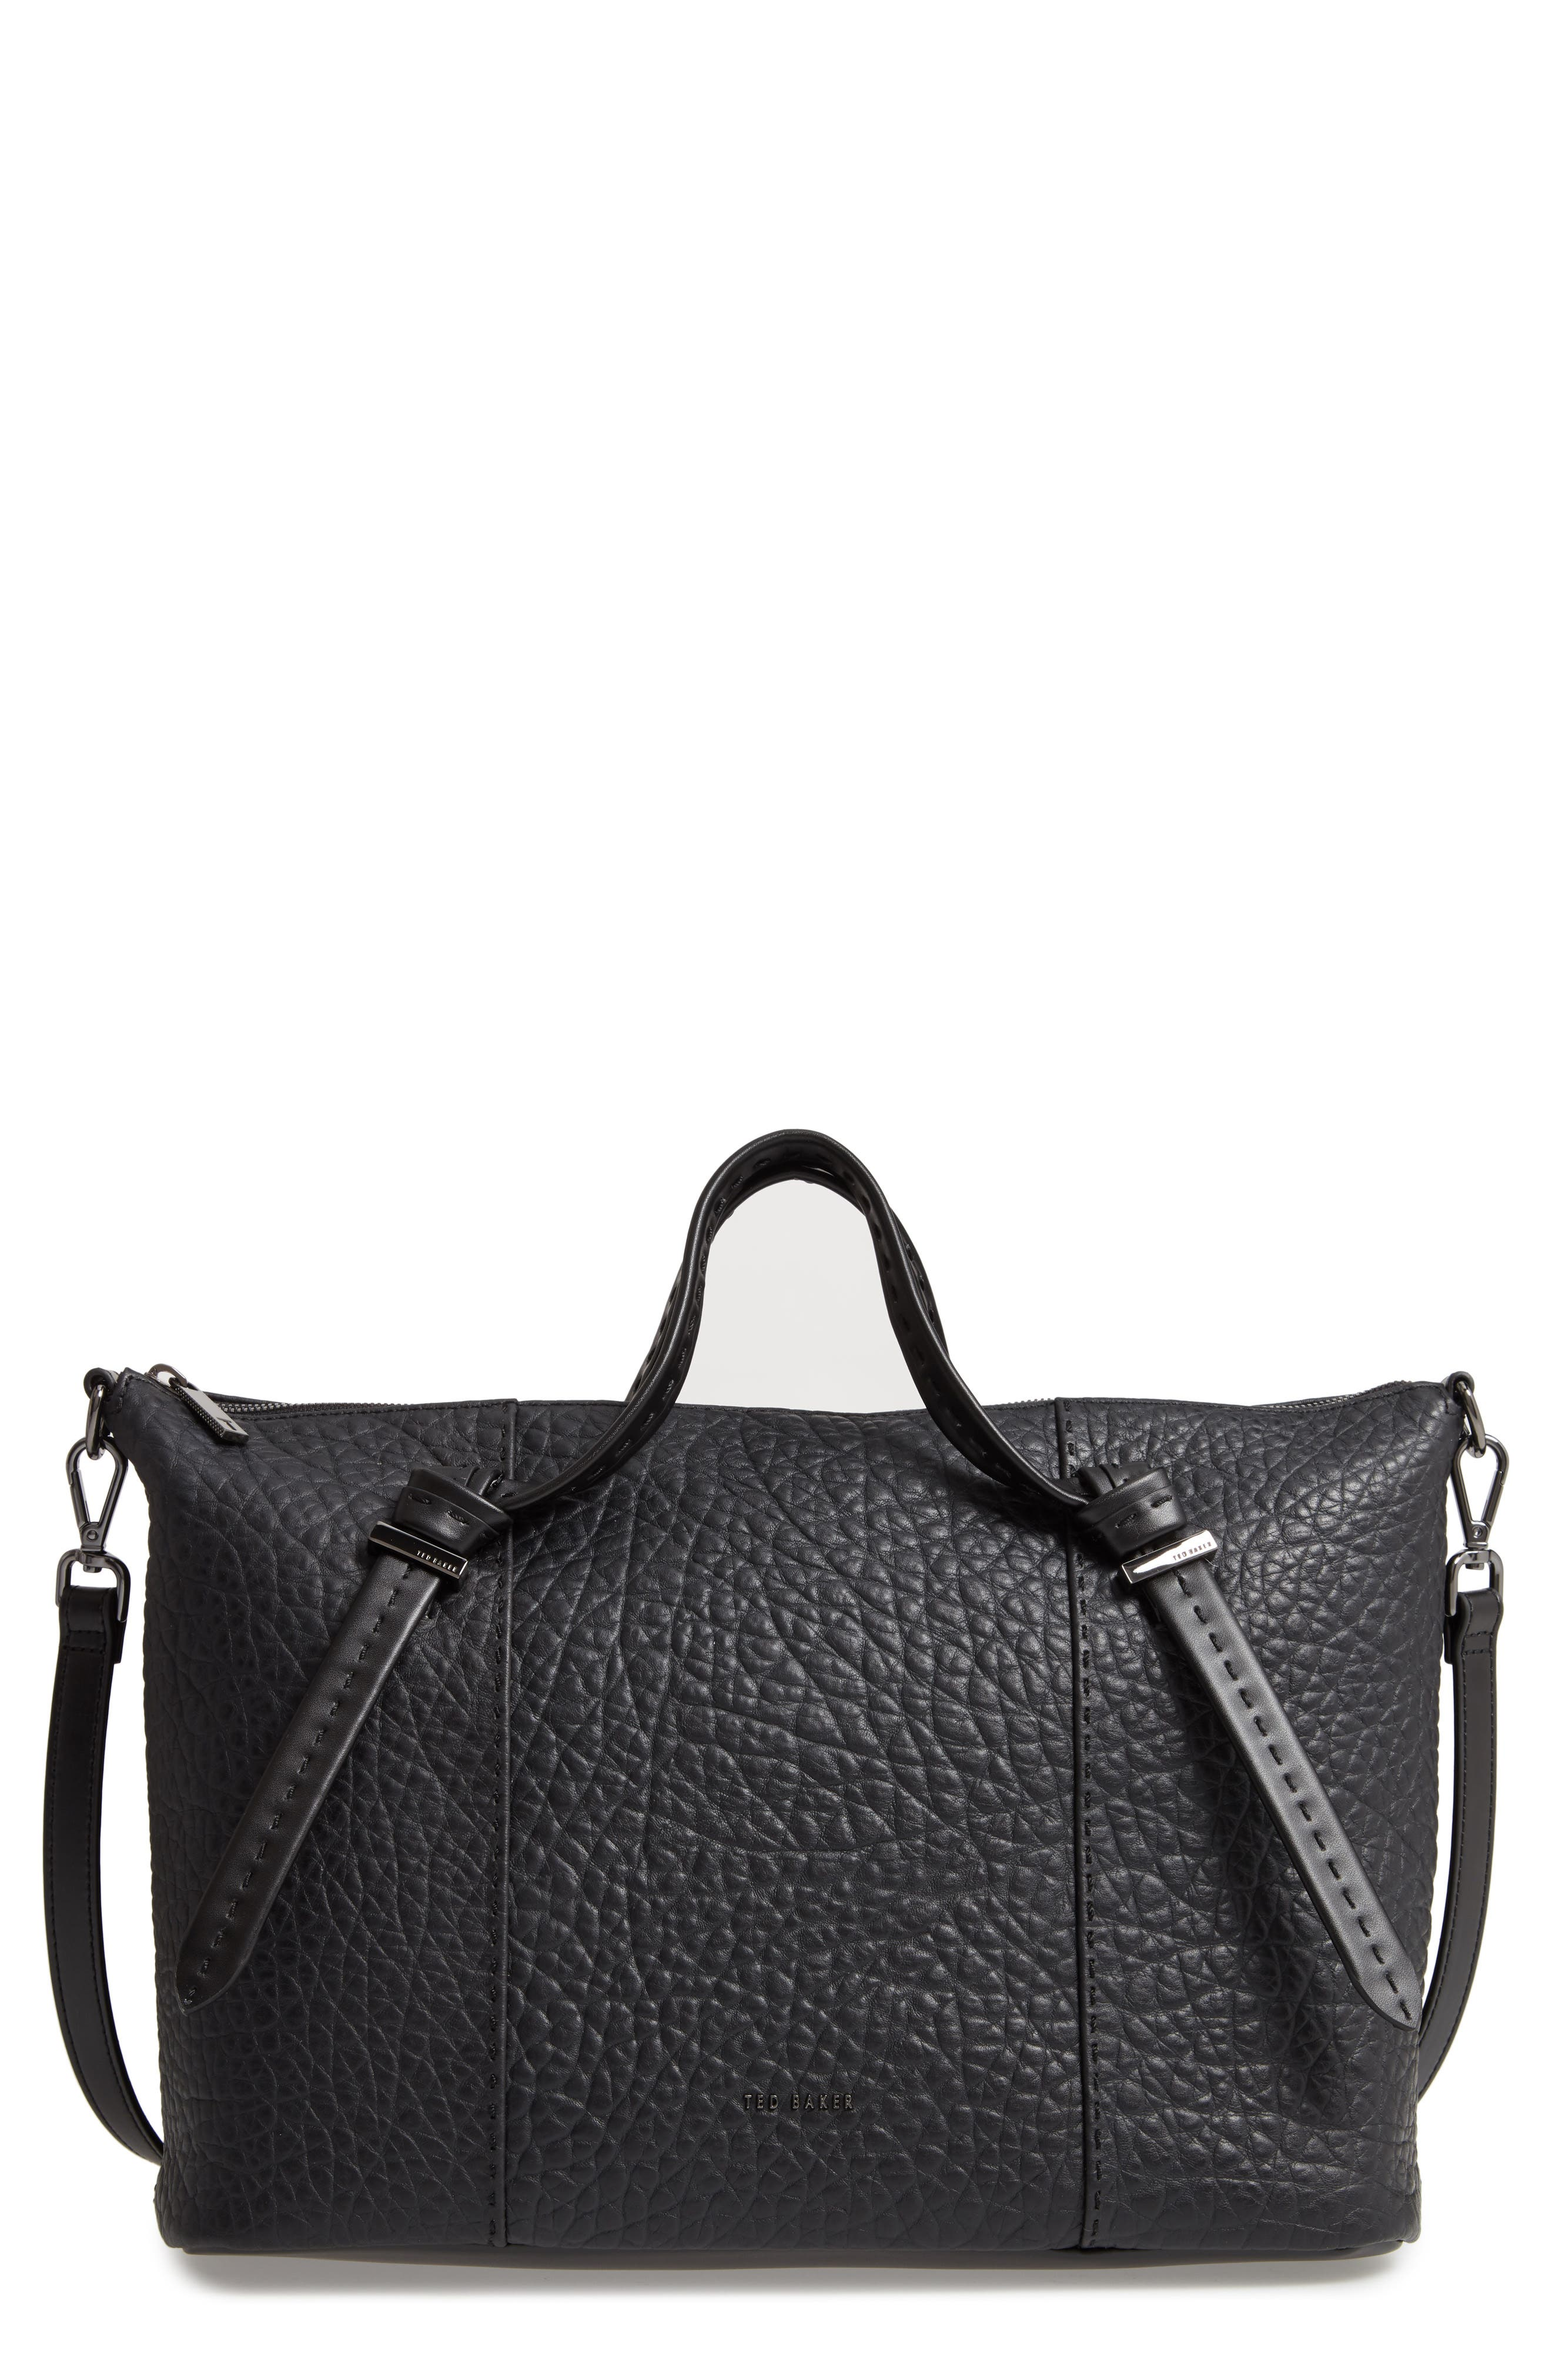 Oellie Large Leather Tote,                             Main thumbnail 1, color,                             JET BLACK